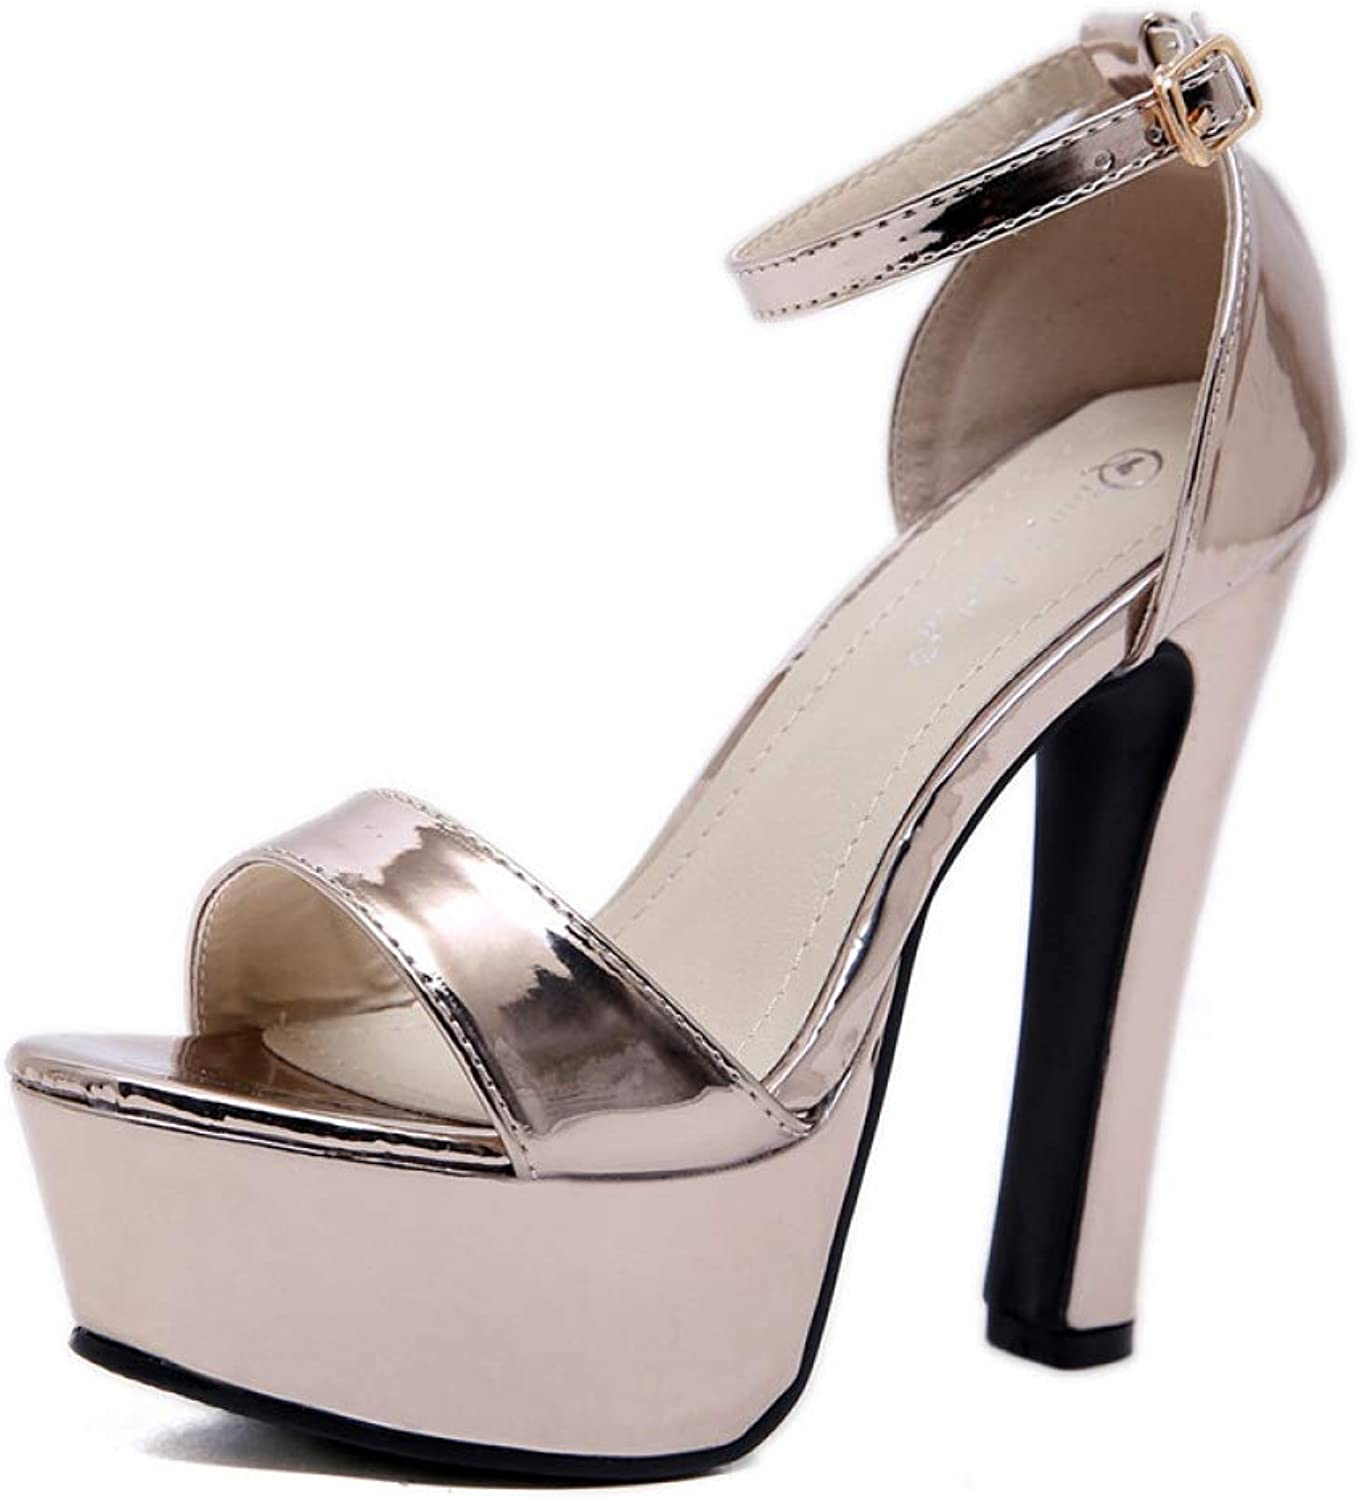 T-JULY Women Sandals Super High Heels Thick Heel Platform shoes Woman Party shoes Female Pumps with Ankle Strap